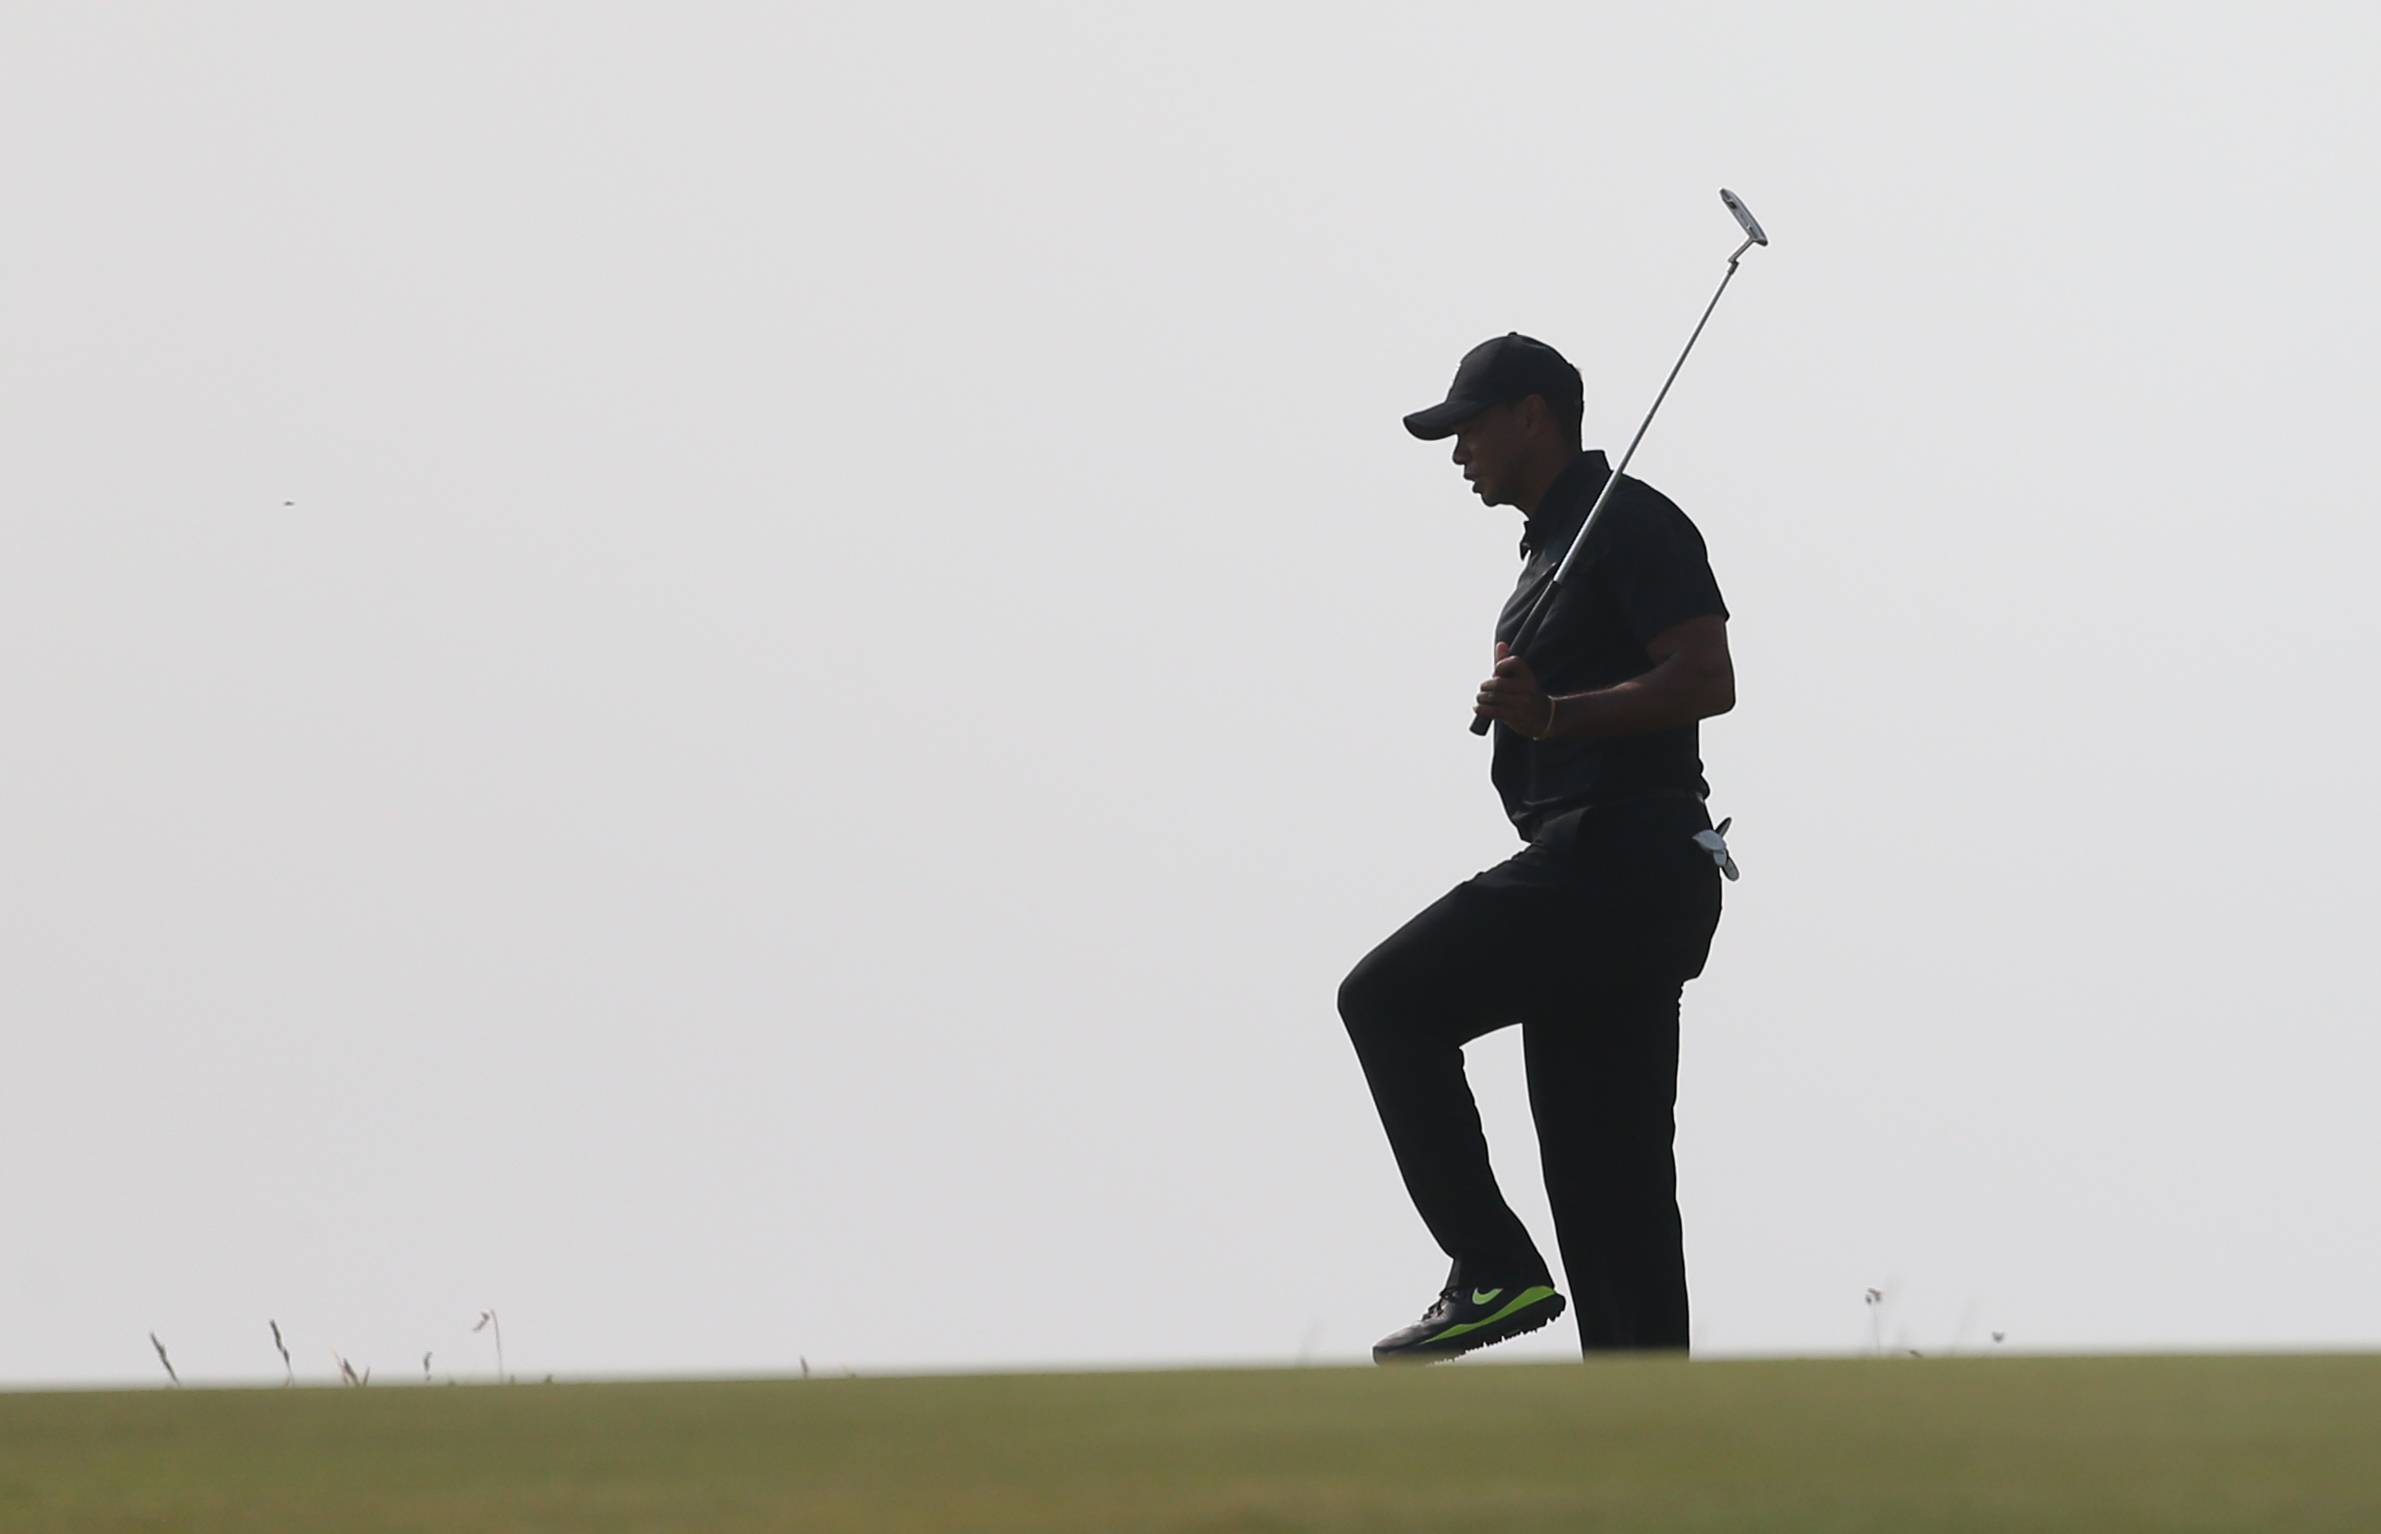 Tiger Woods prepares to putt on the 13th green Friday during the second round of the British Open at the Royal Liverpool golf club in Hoylake, England.